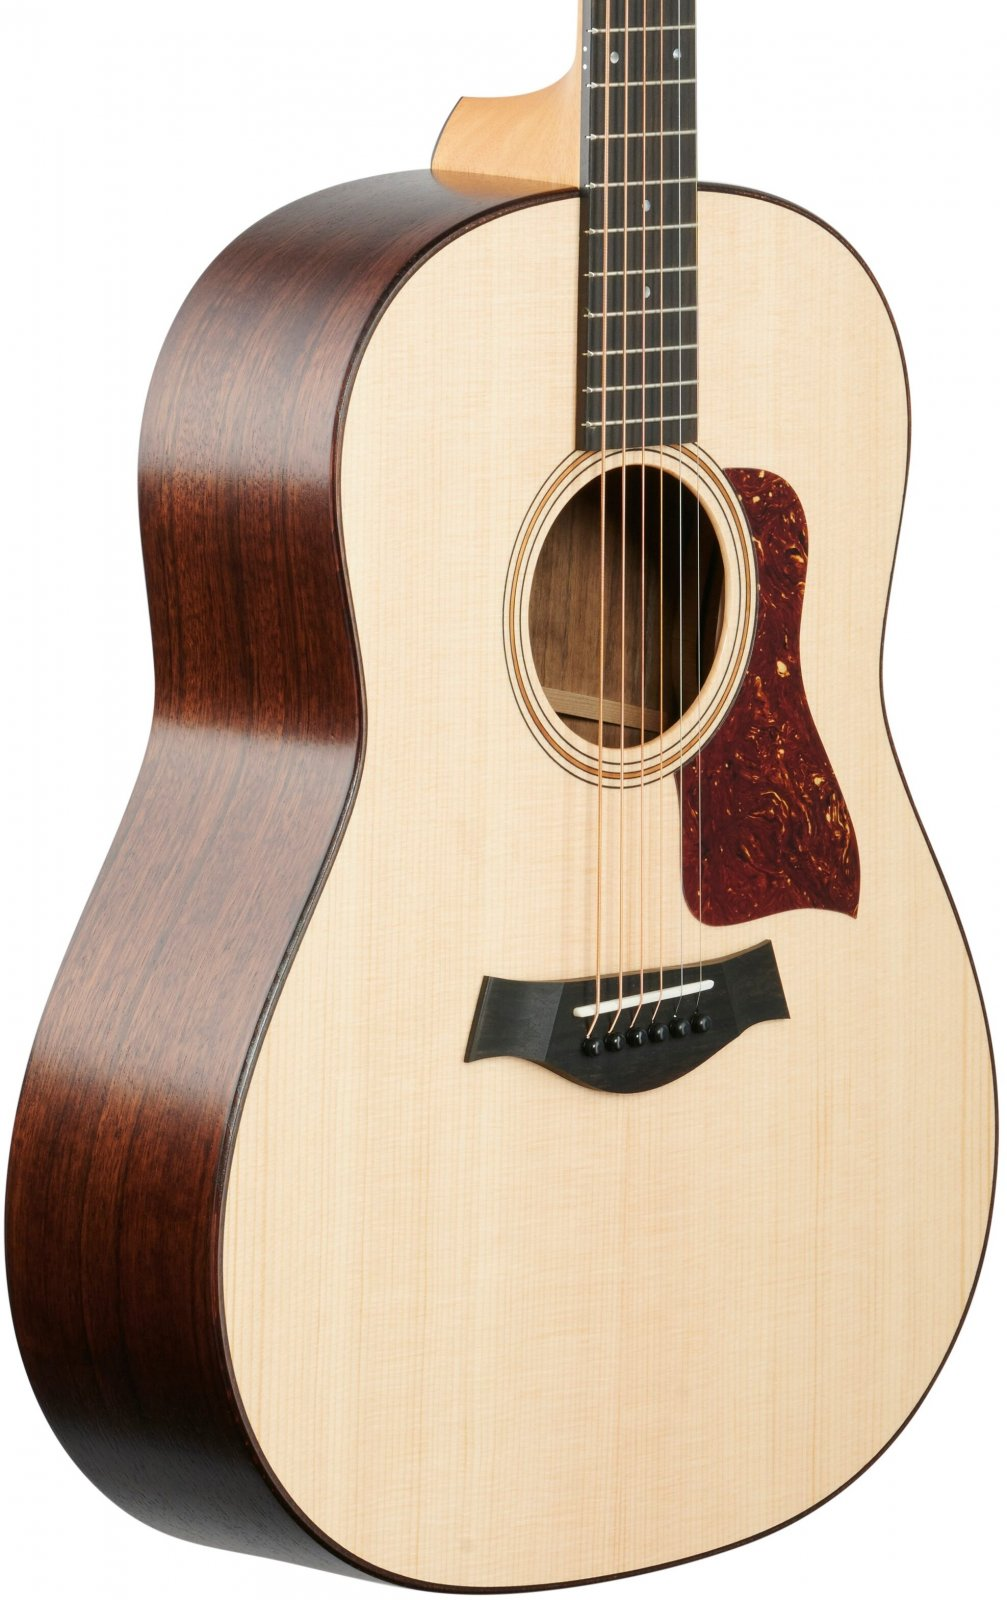 Taylor AD17 Ovangkol Back and Sides, Spruce top